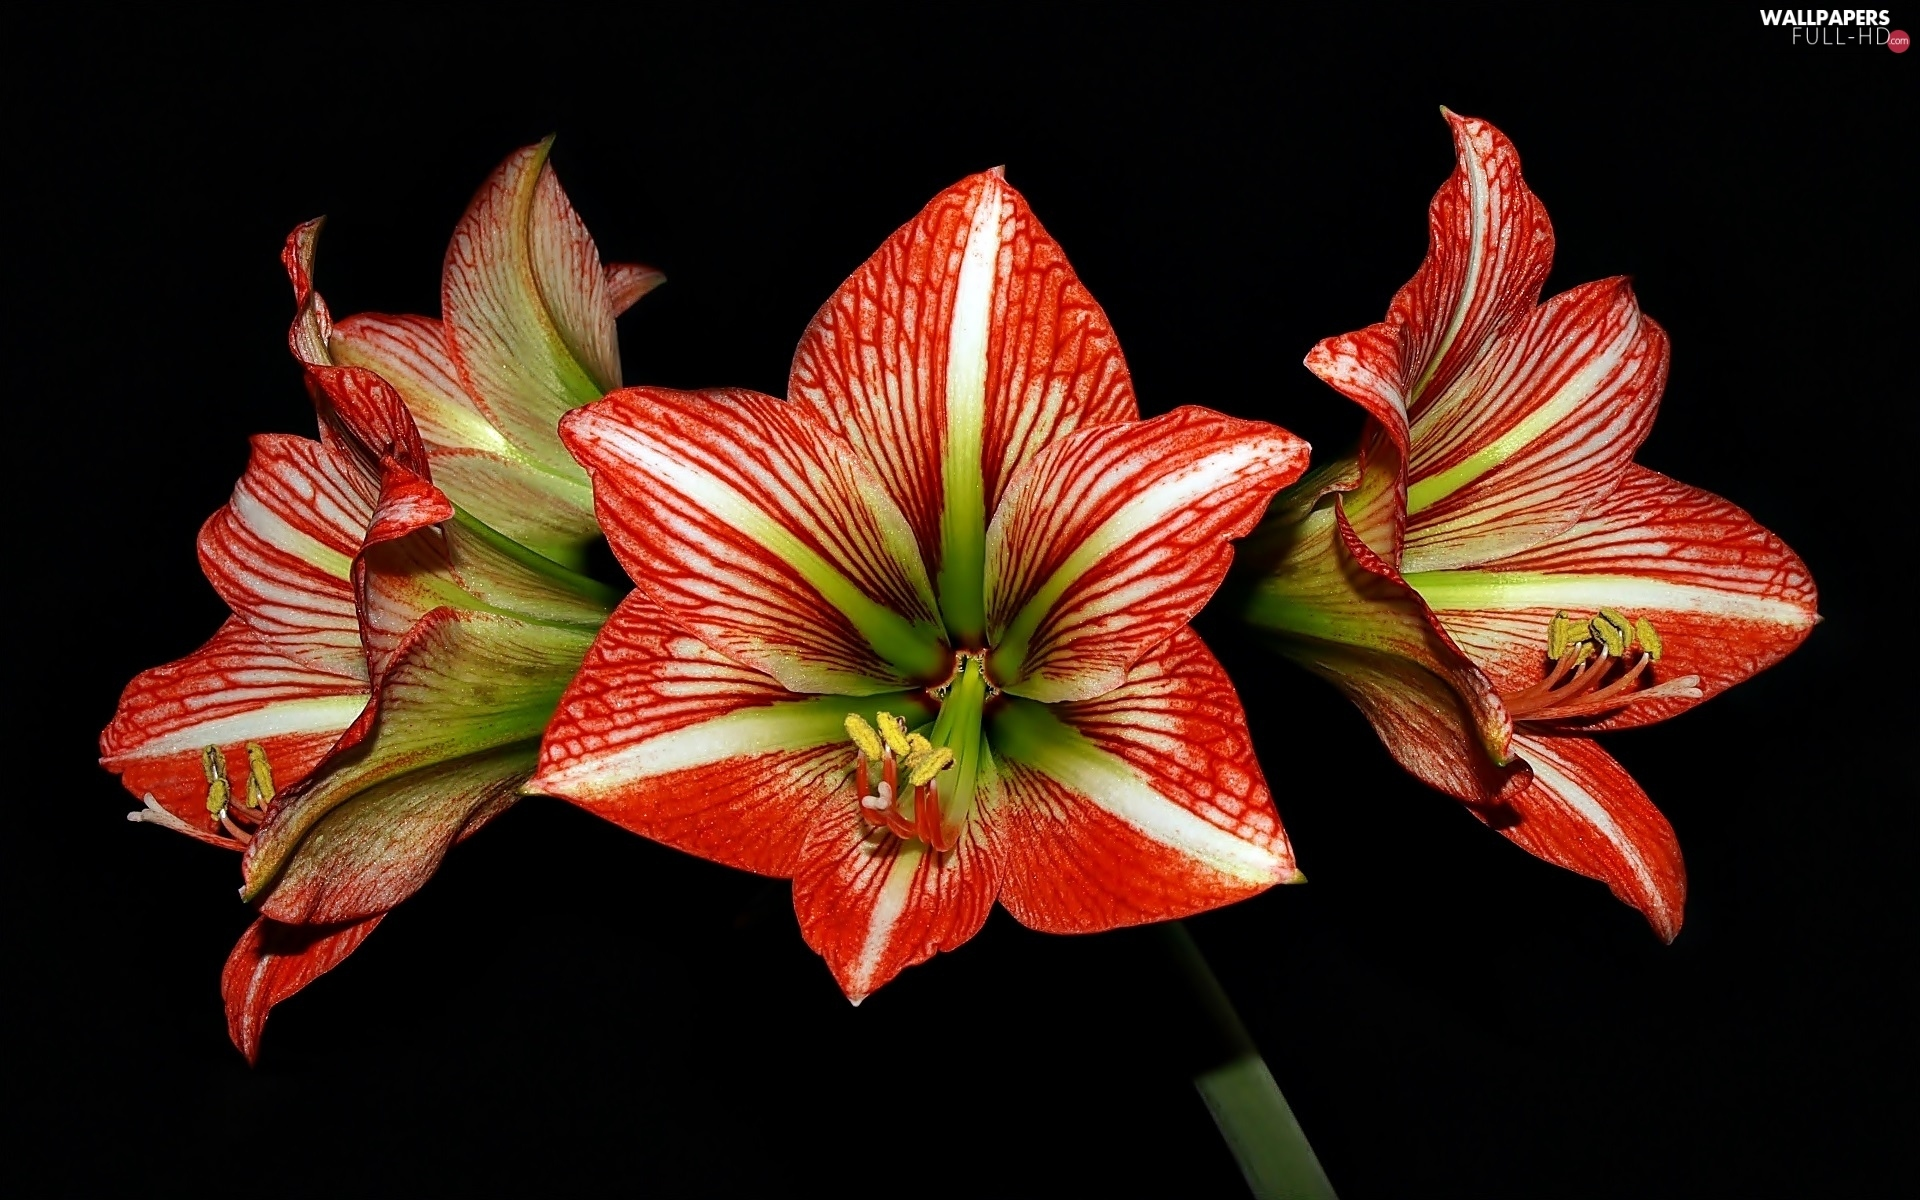 background, Black, amaryllis, Red